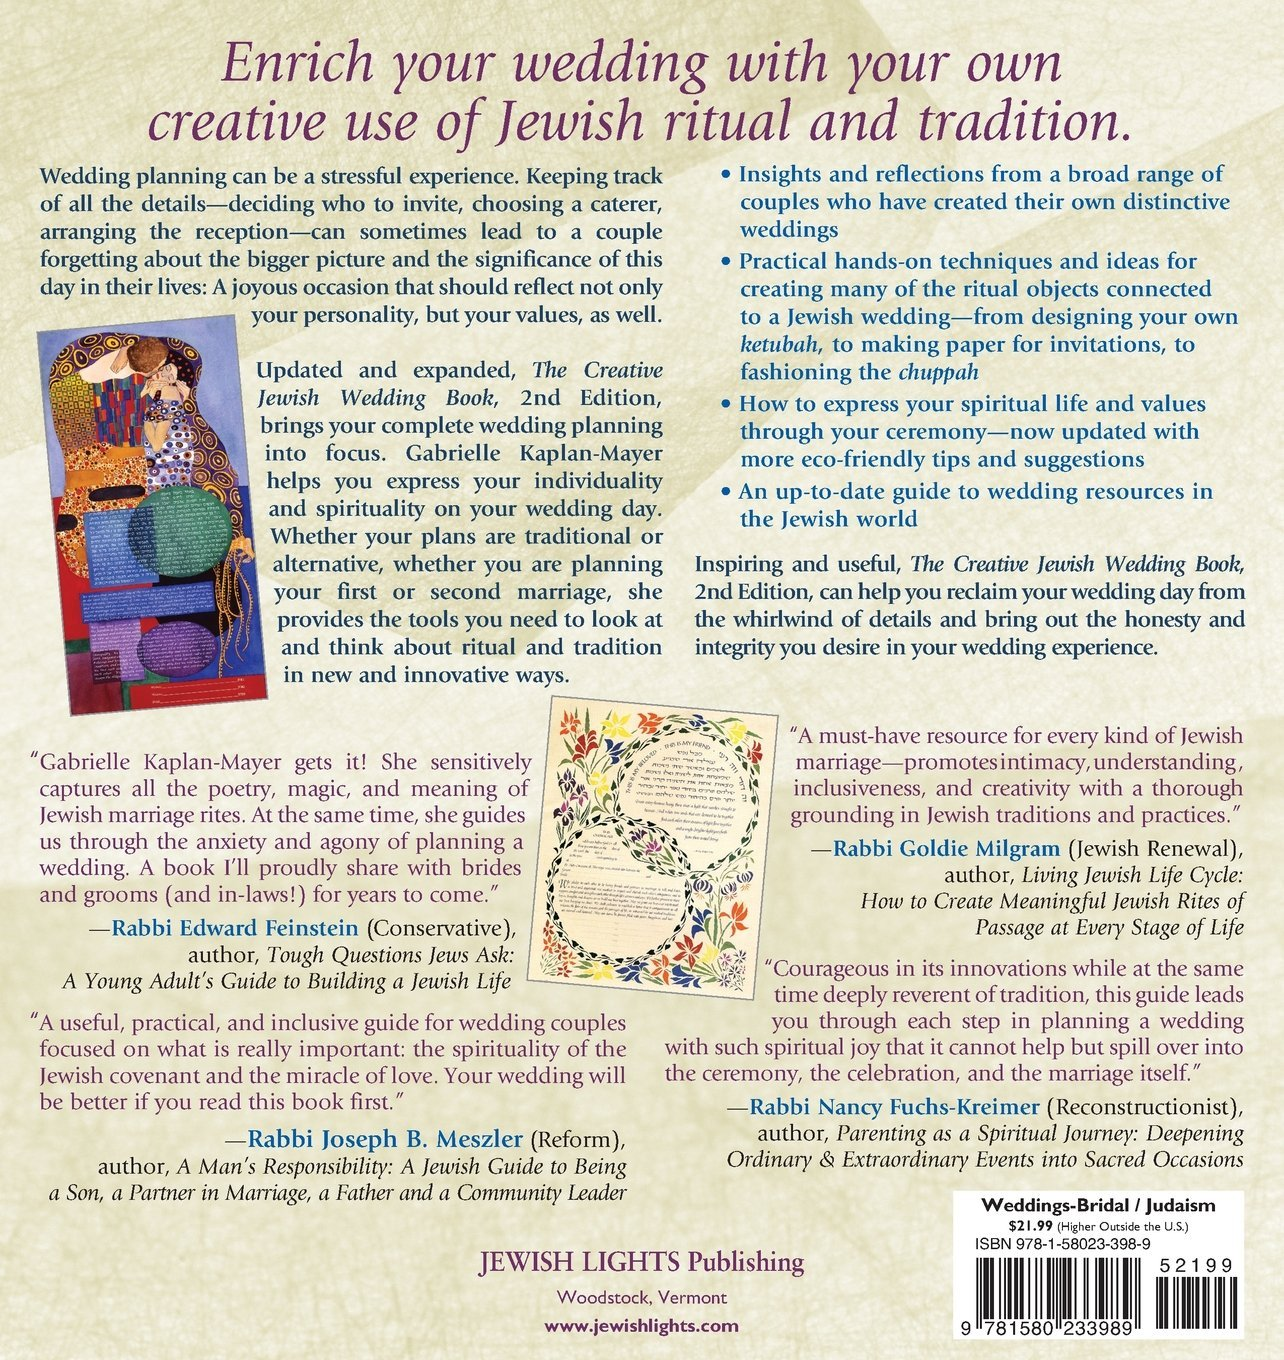 The Creative Jewish Wedding Book (2nd Edition): A Hands-On Guide to New & Old Traditions, Ceremonies & Celebrations